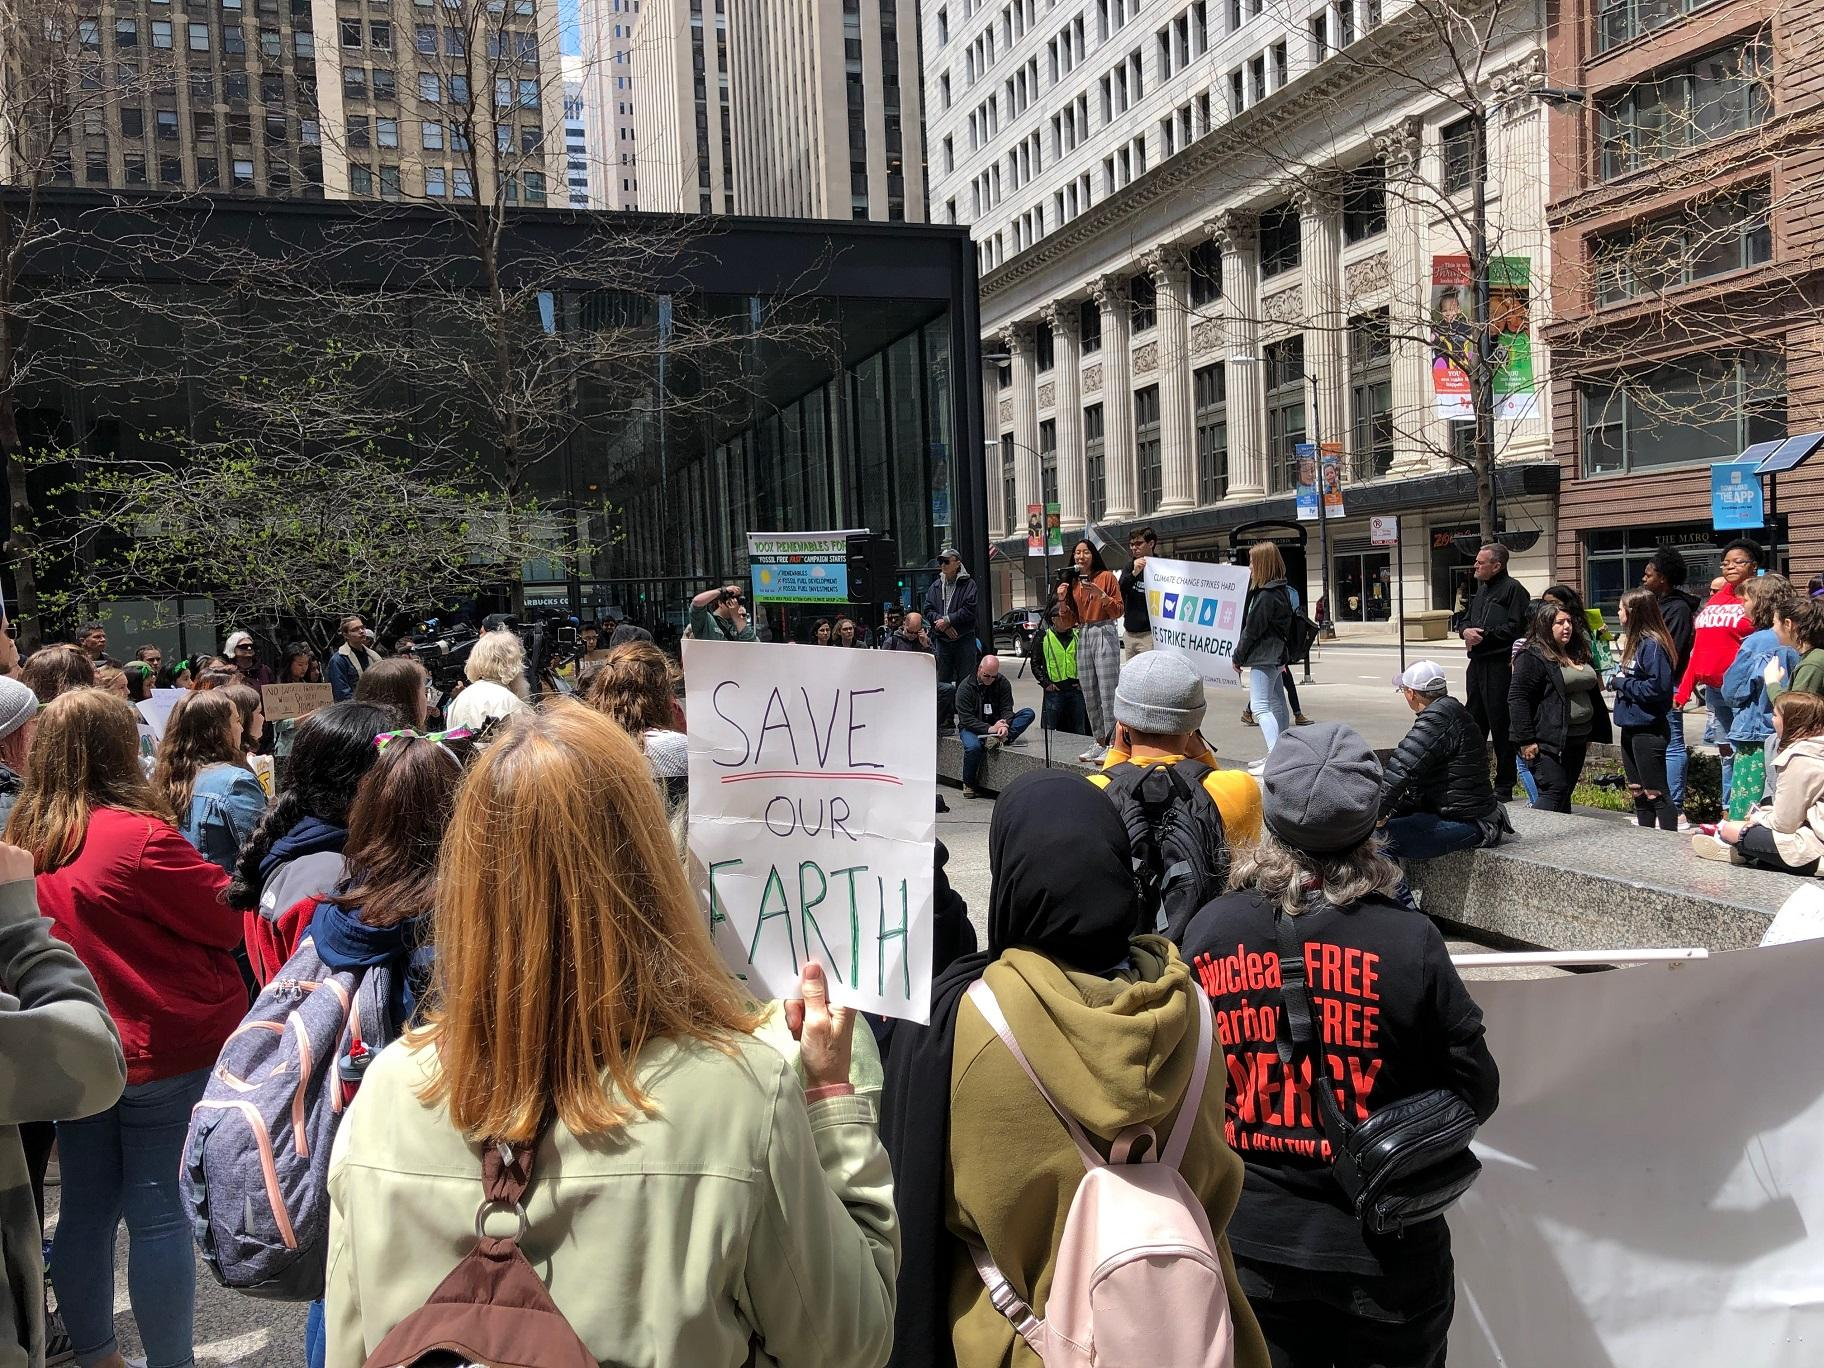 Students at the Illinois Youth Climate Strike listen to organizers during a rally in downtown Chicago on Friday, May 3, 2019. (Alex Ruppenthal / WTTW News)